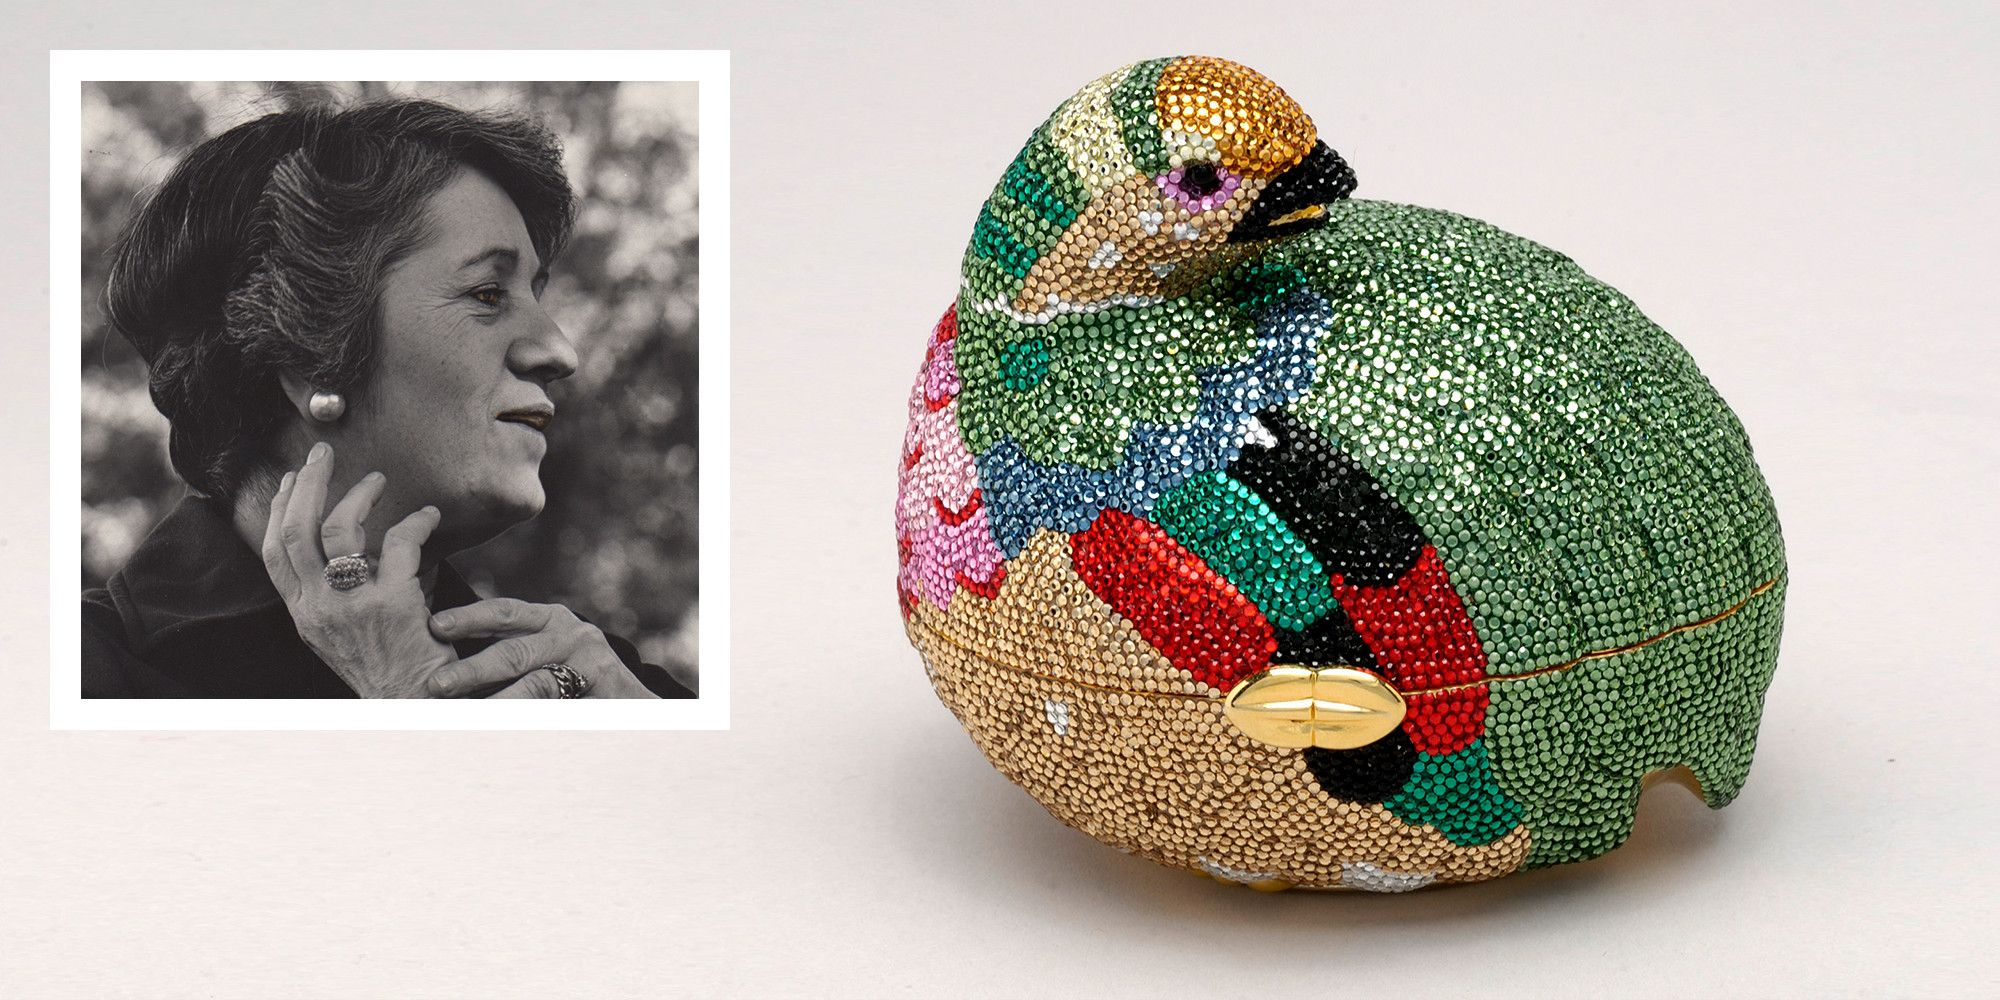 2097c3b22 History of Judith Leiber and Her Handbags - Things to Know About ...